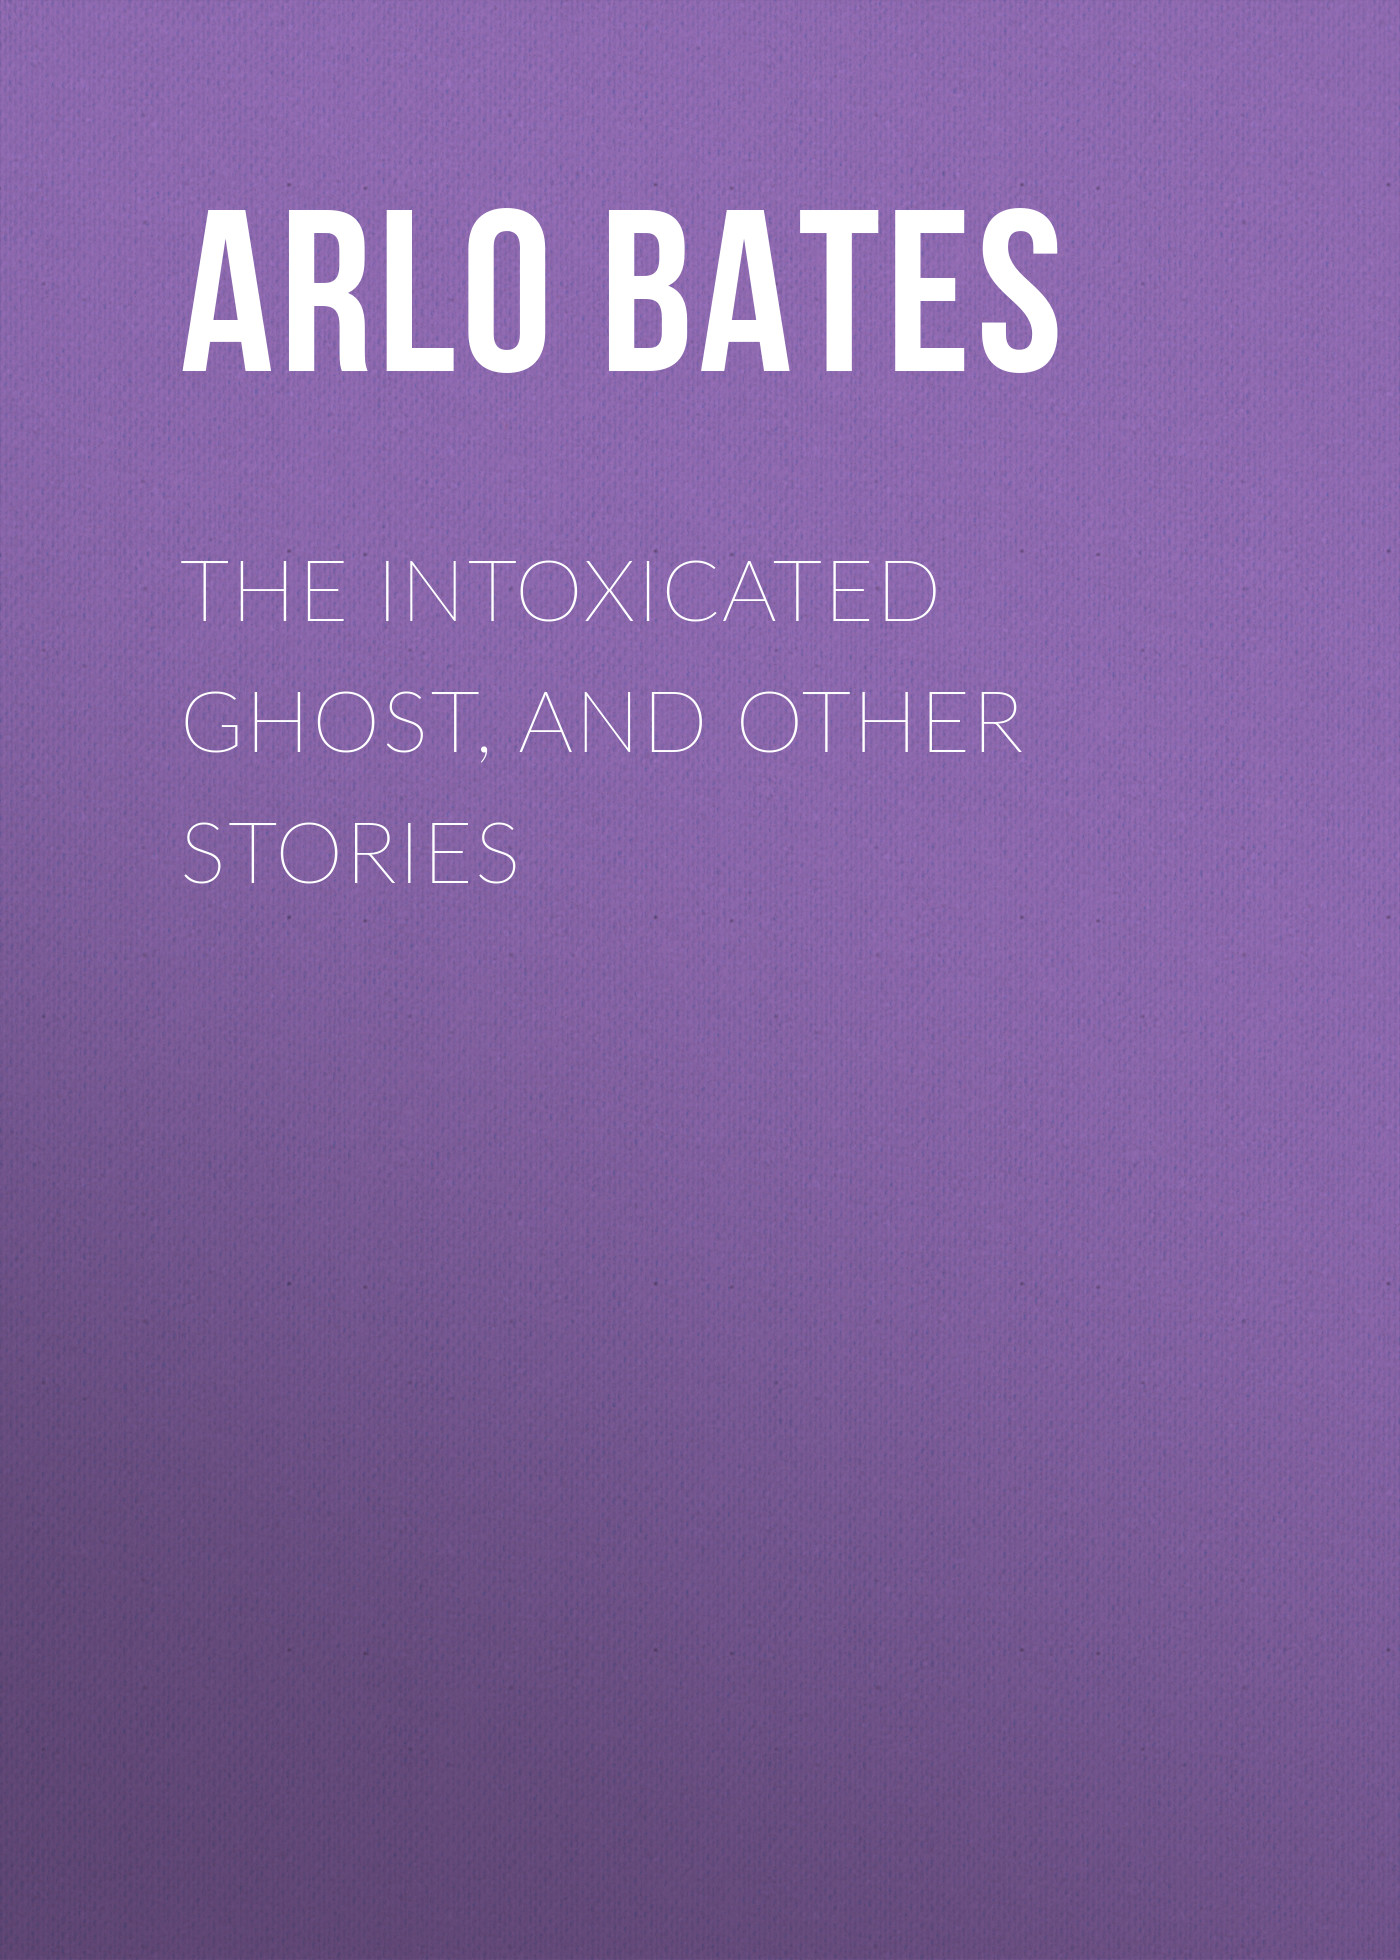 Bates Arlo The Intoxicated Ghost, and other stories скейтборды larsen скейтборд street 2 31х8